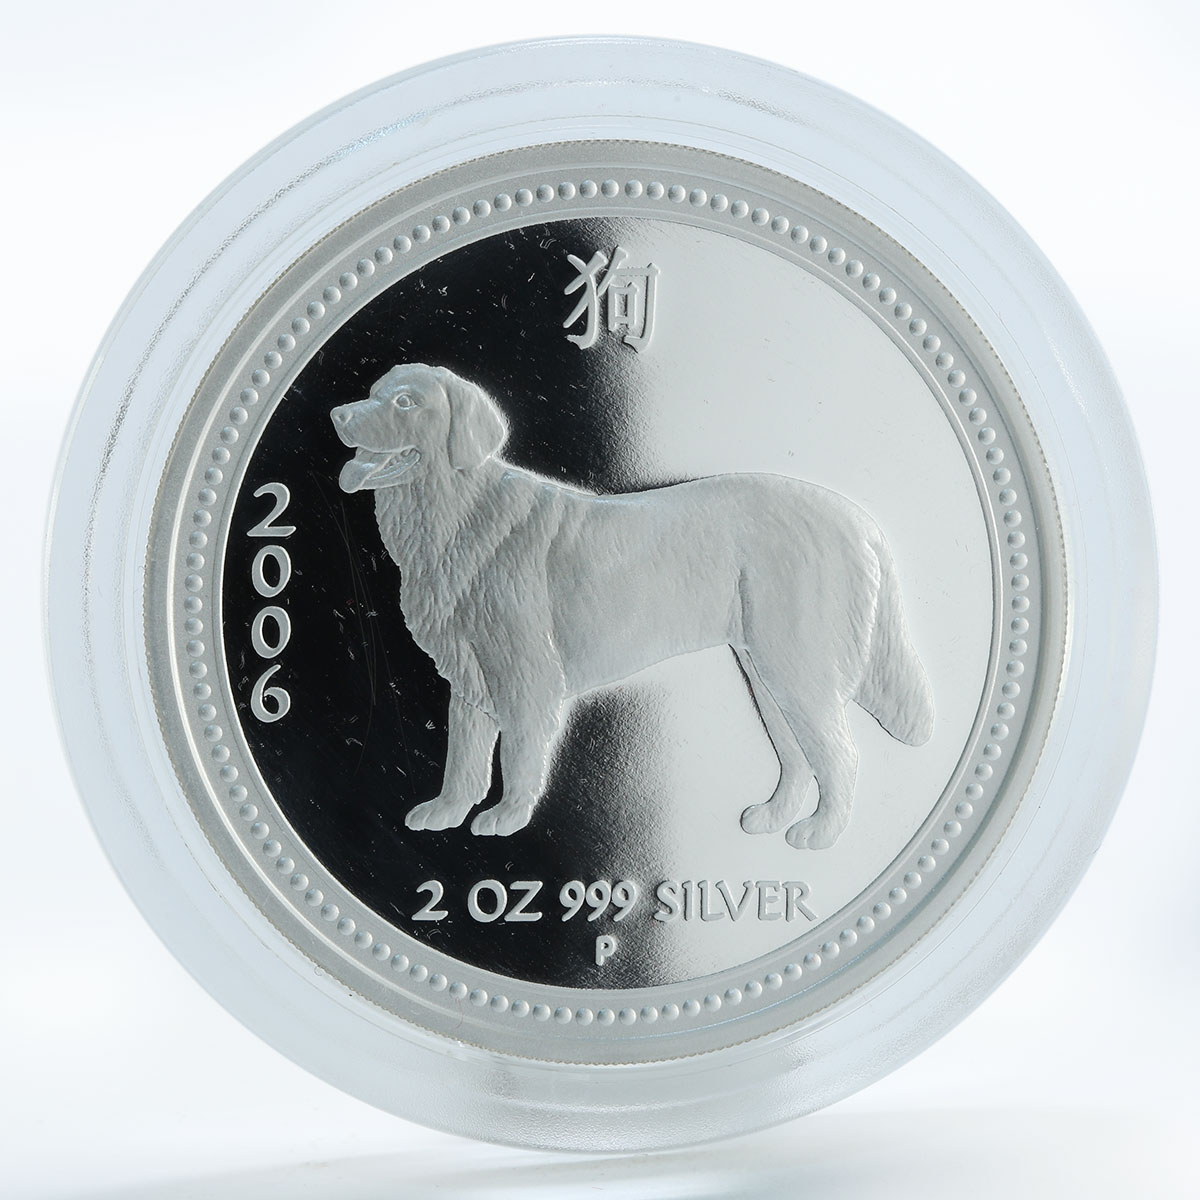 Australia, 2 dollars, Year of the Dog Lunar Series I Proof 2006